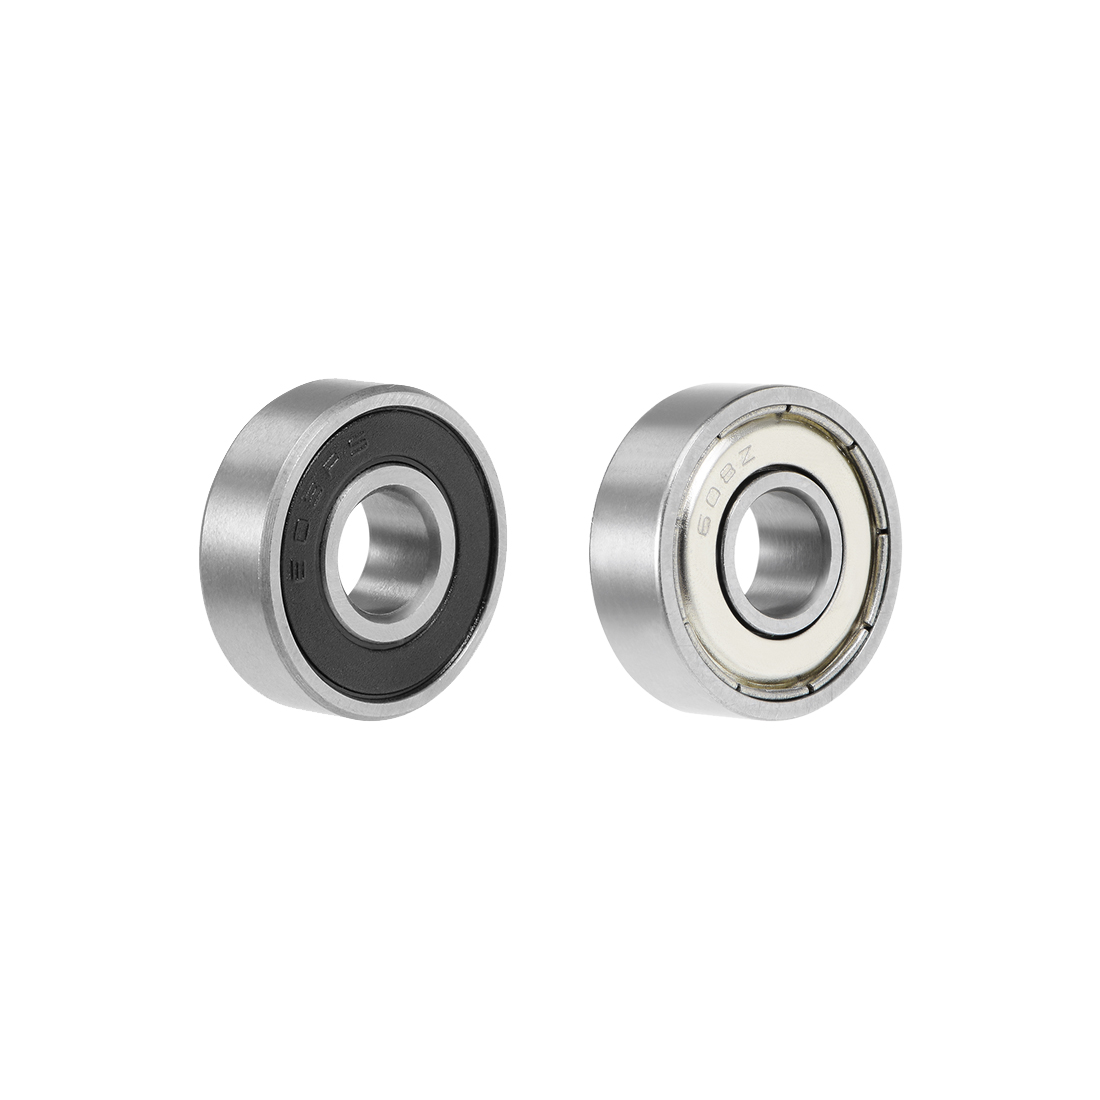 Uxcell 1-20pcs 8mm Bore Deep Groove Bearing Double Shielded/Sealed Miniature Ball Bearings 608zz 628zz 638zz 698zz